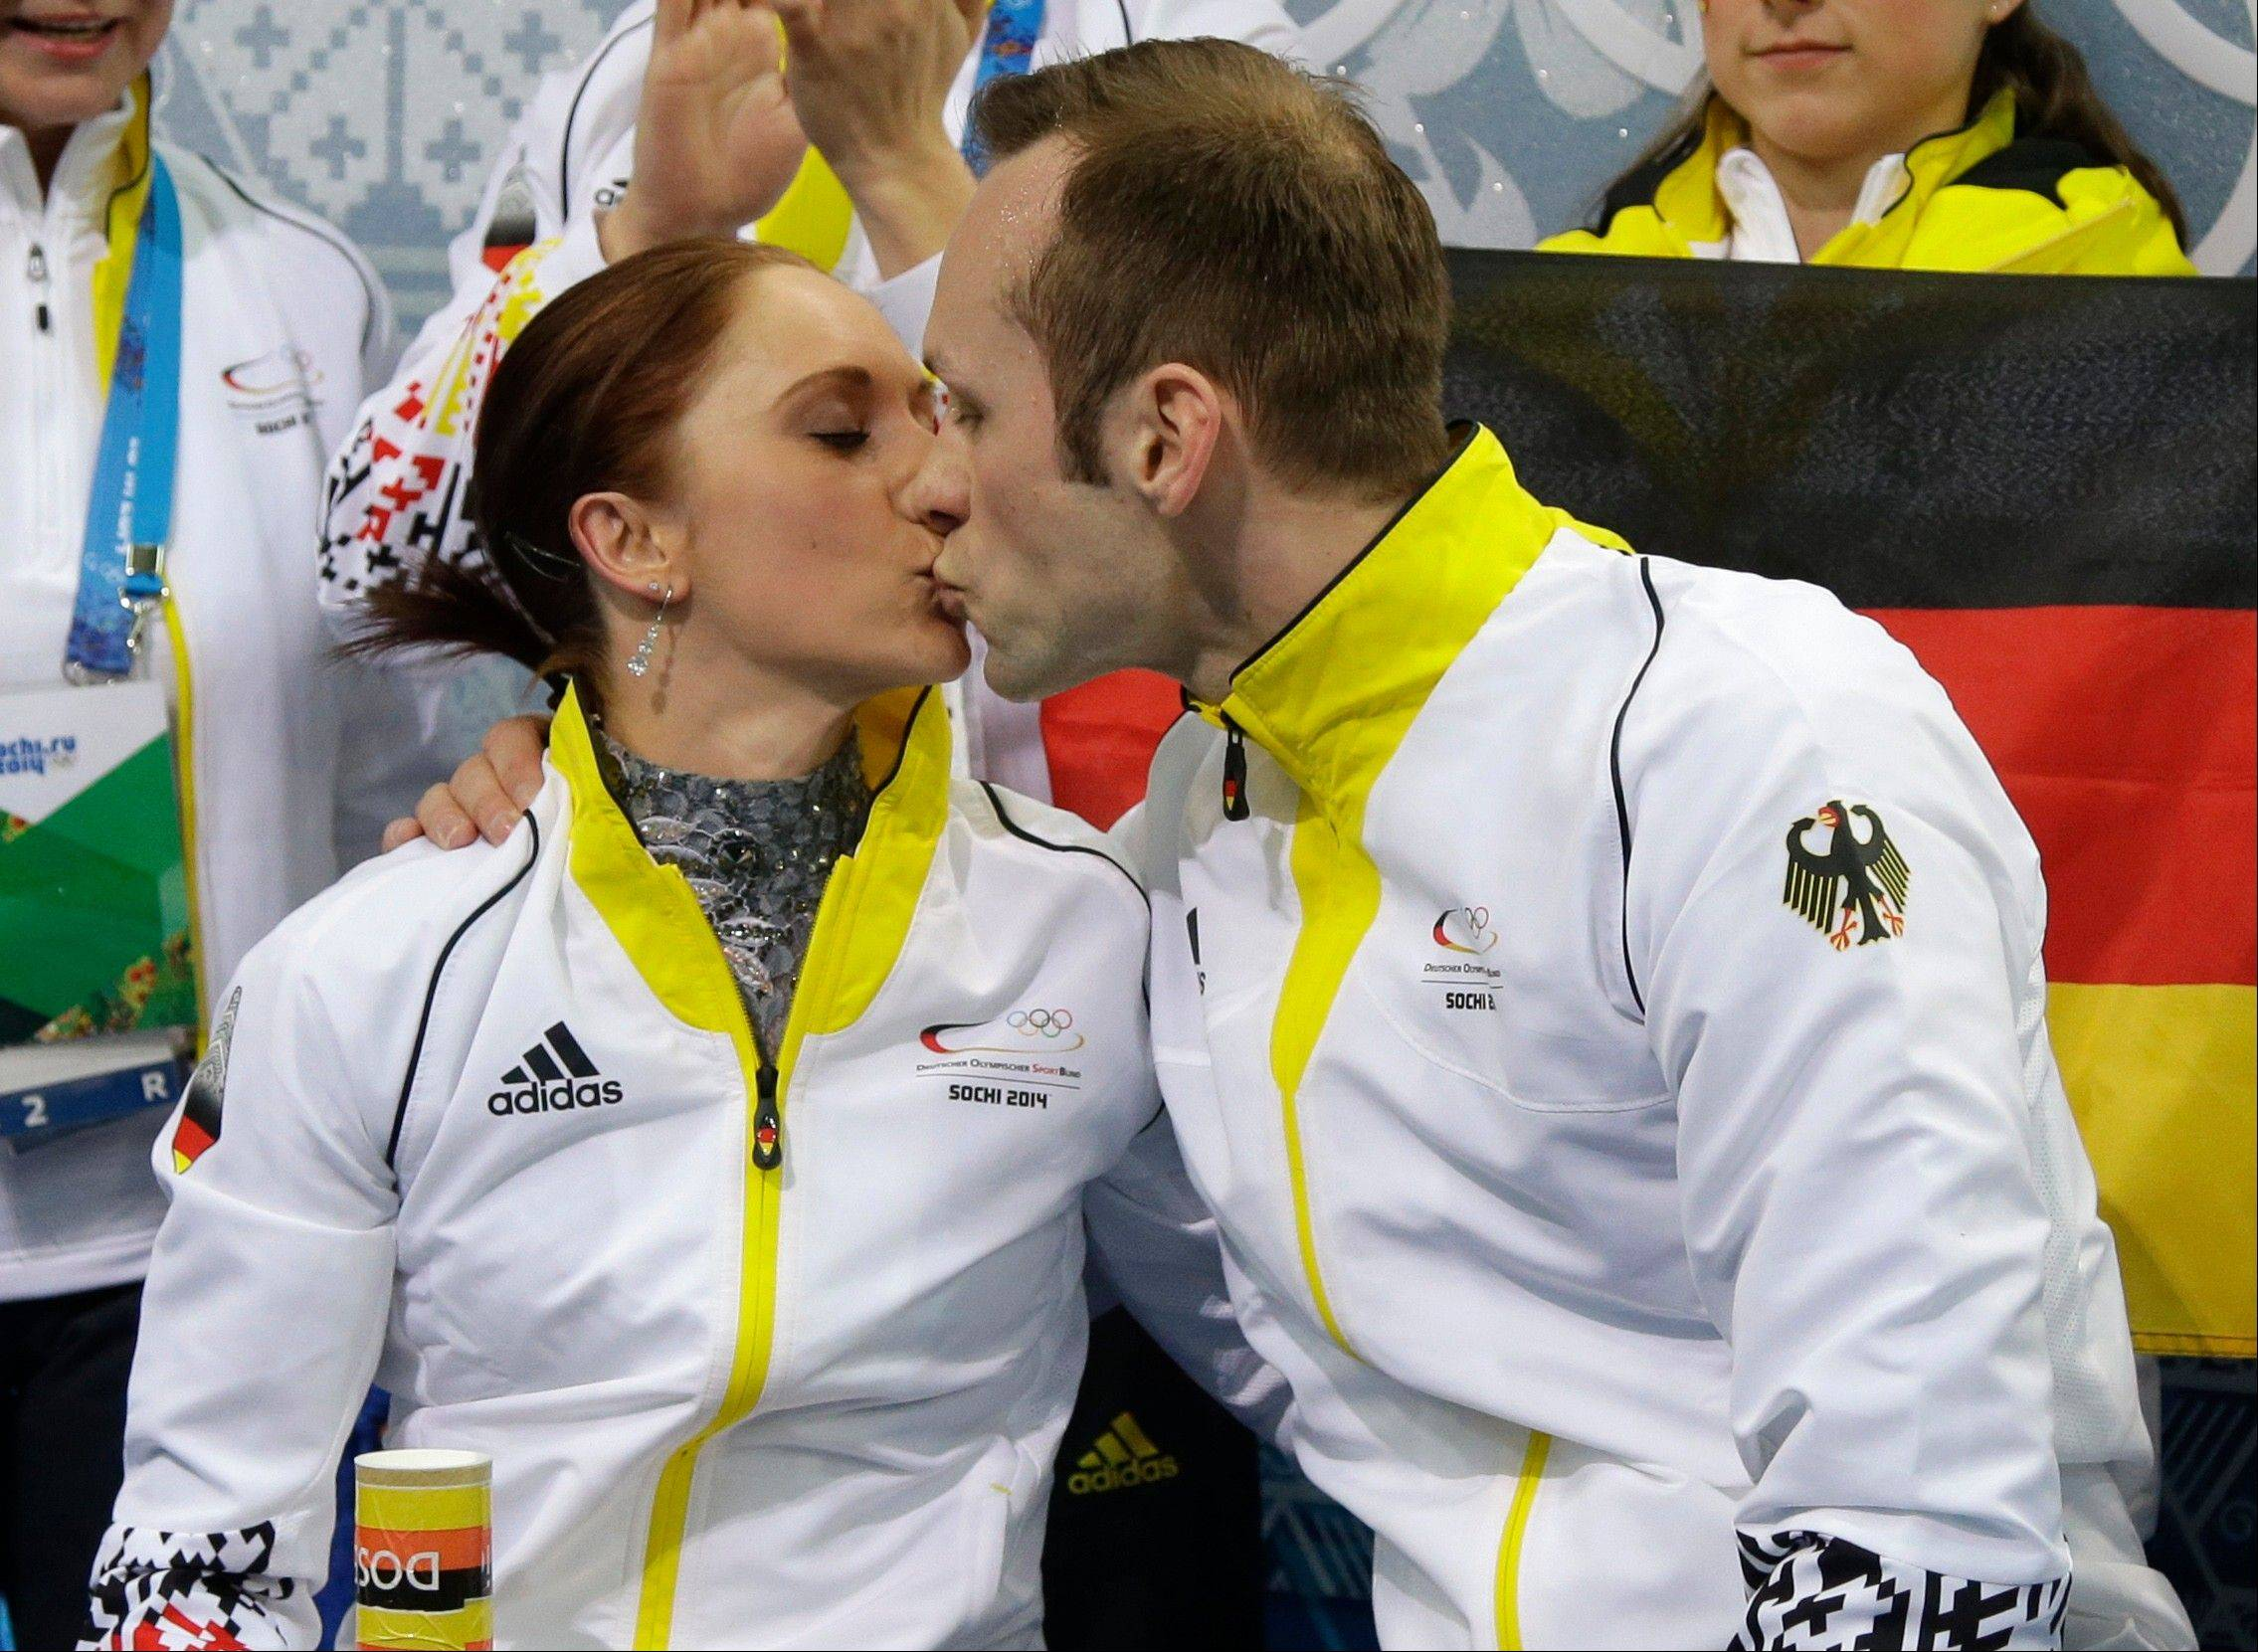 Maylin Wende and Daniel Wende of Germany kiss as they wait for their results after competing in the team pairs short program figure skating competition at the Iceberg Skating Palace during the 2014 Winter Olympics.